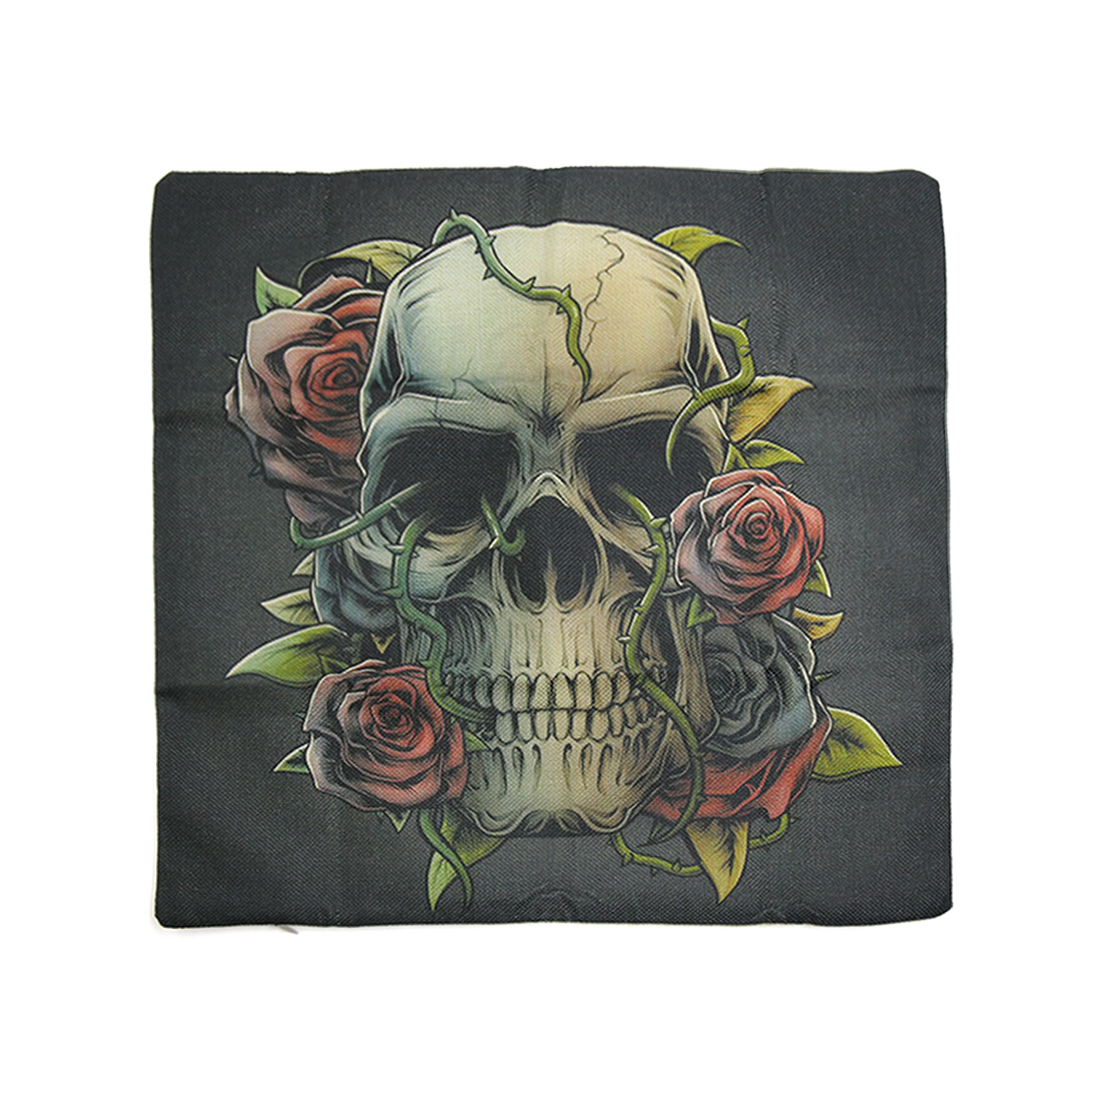 Square Linen Dancing Skull Printed Car Throw Cushion Pillow Cover Home Decor